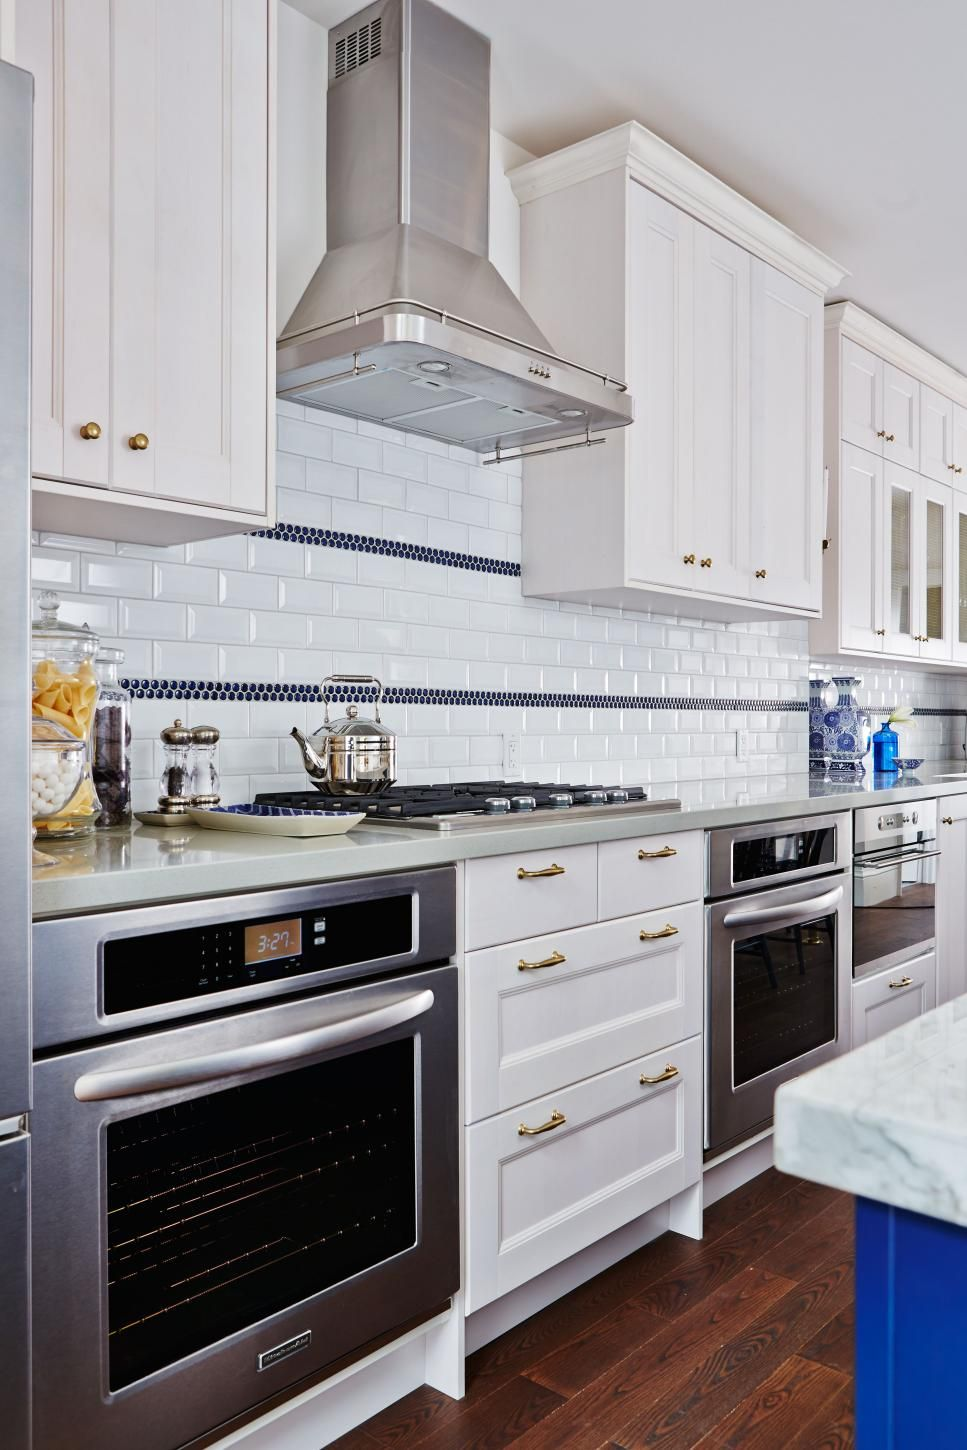 See How Sarah Richardson Designer And Host Of Hgtv S Sarah Sees Potential Transforms These Disaster Kitchens Into Gourme Kitchen Oven Kitchen Kitchen Remodel